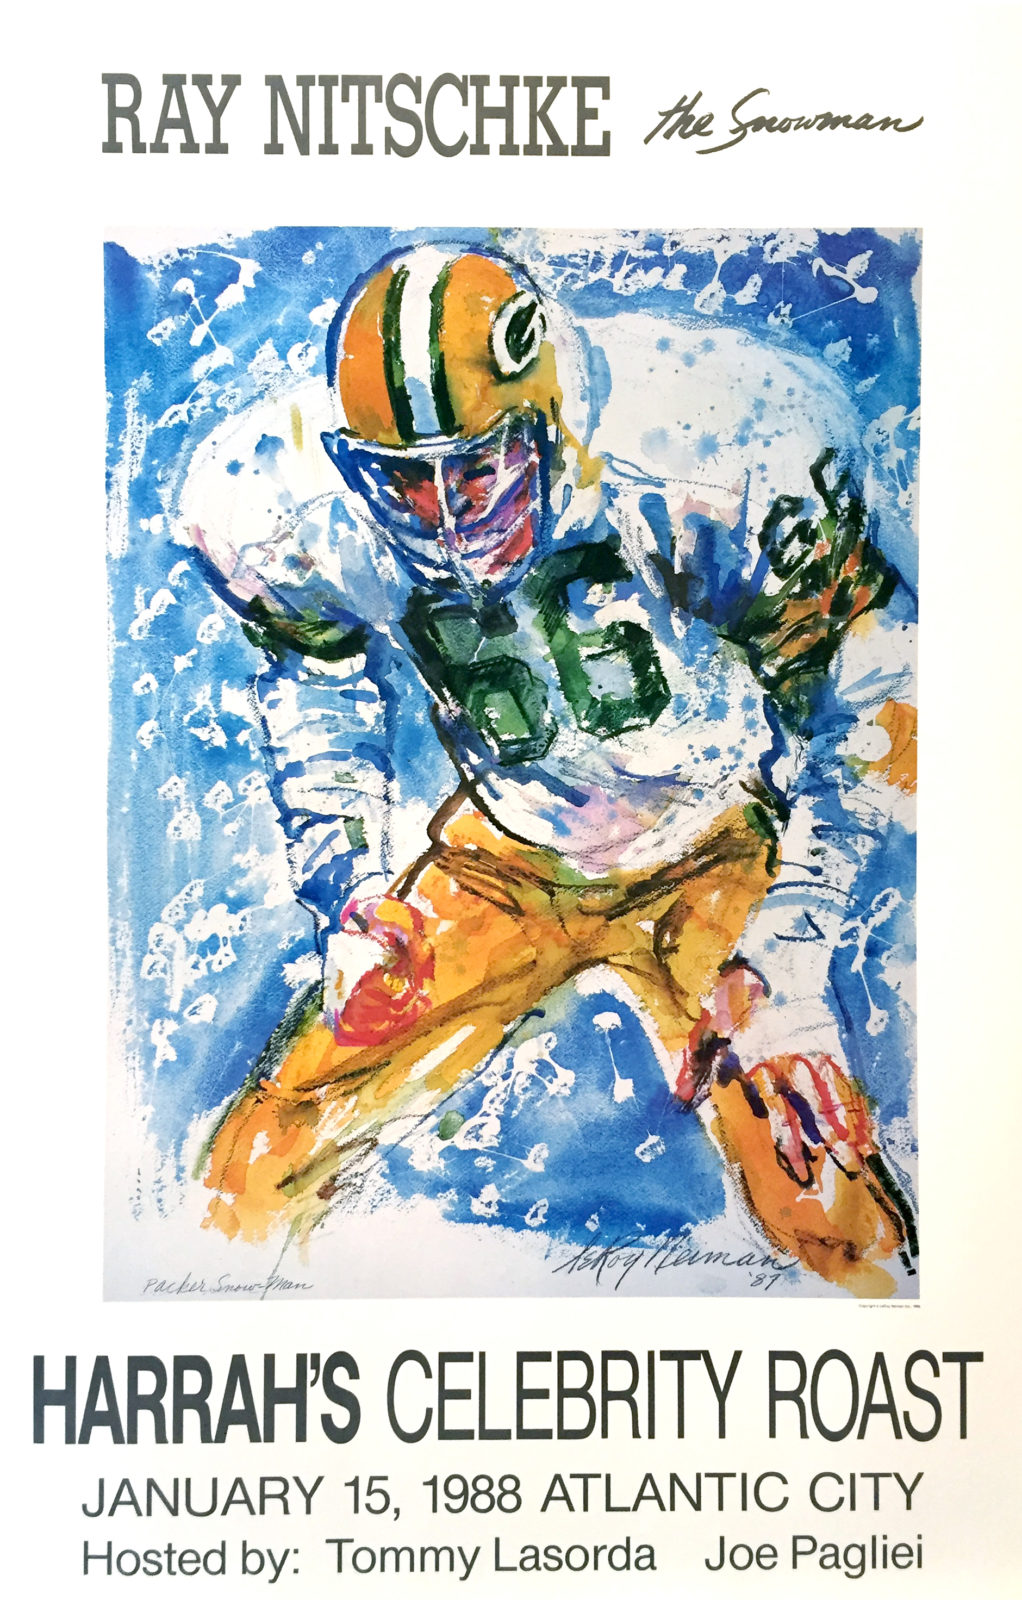 Ray Nitschke, Football poster